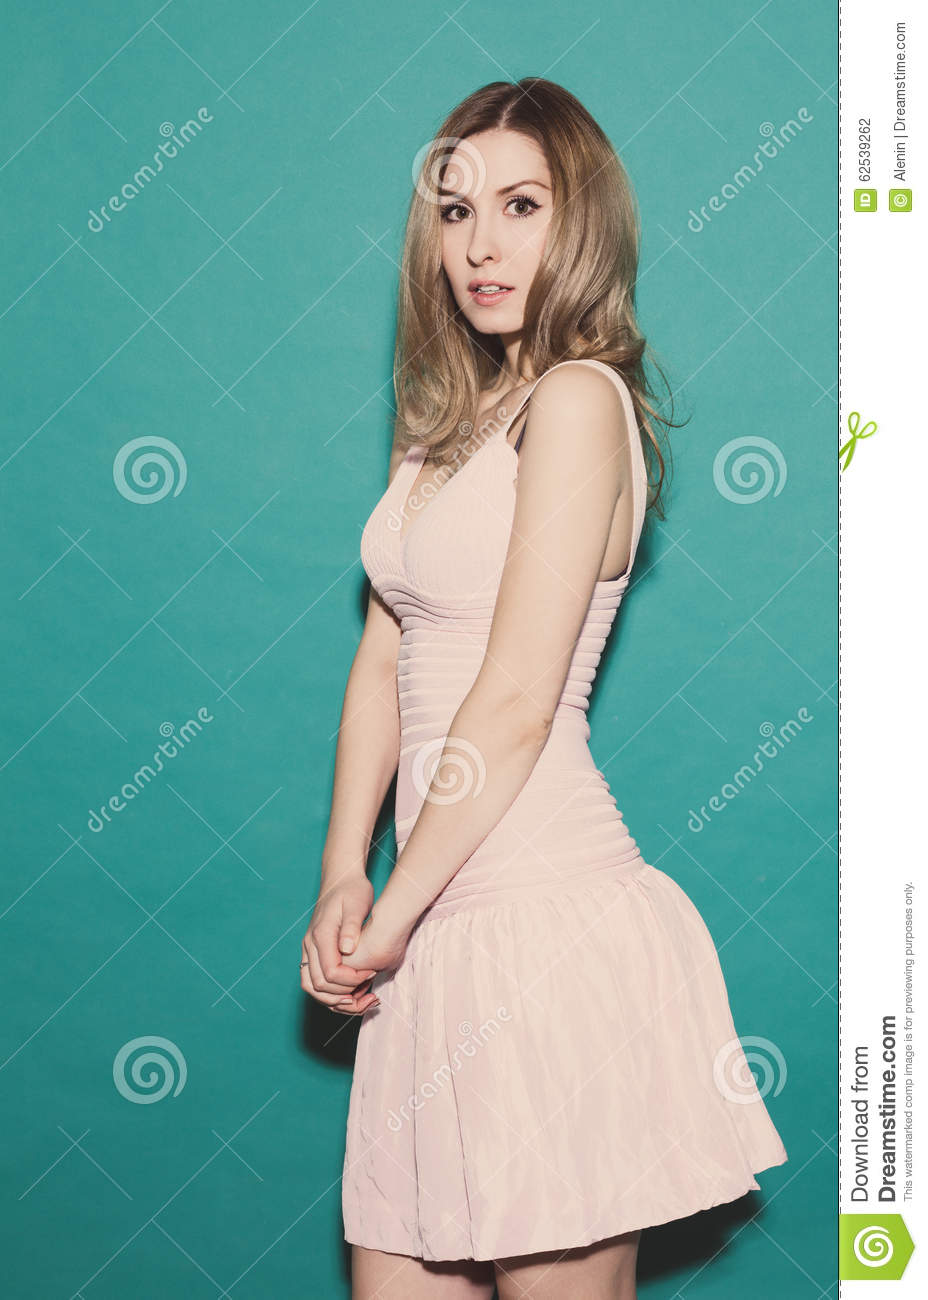 Frightened girl, standing in a short pink dress posing on a green background in the studio. Toned